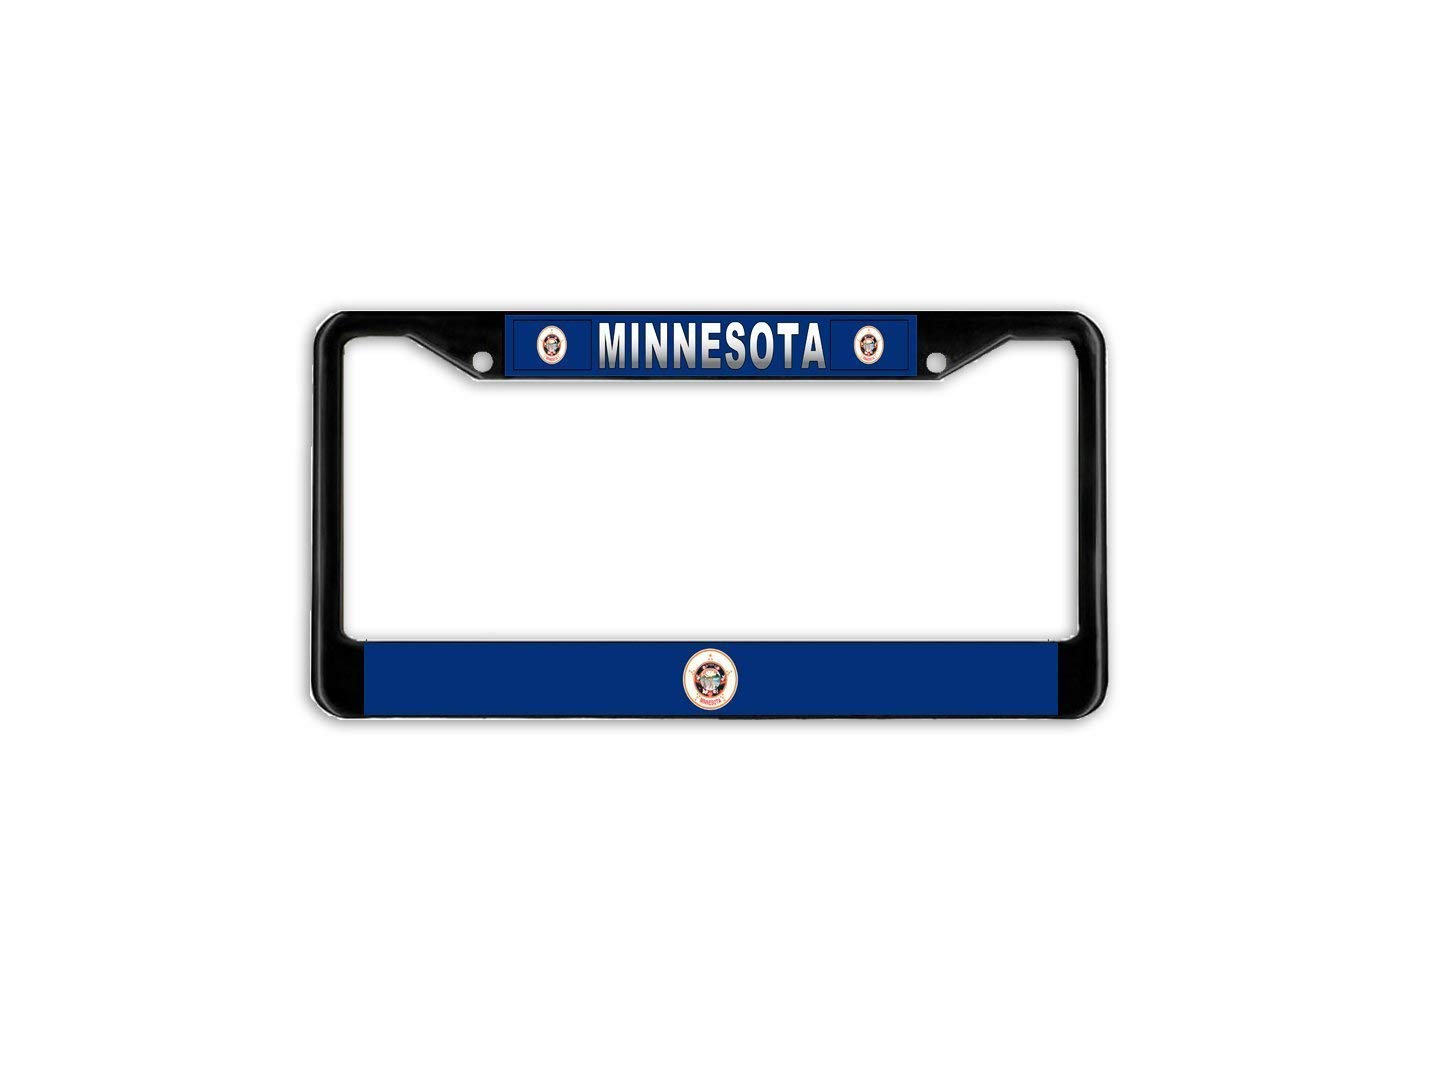 Aluminum License Plate Frame with Screws FashionCZYframe License Plate Frame for Women//Men Car License Plate Cover for US Vehicles